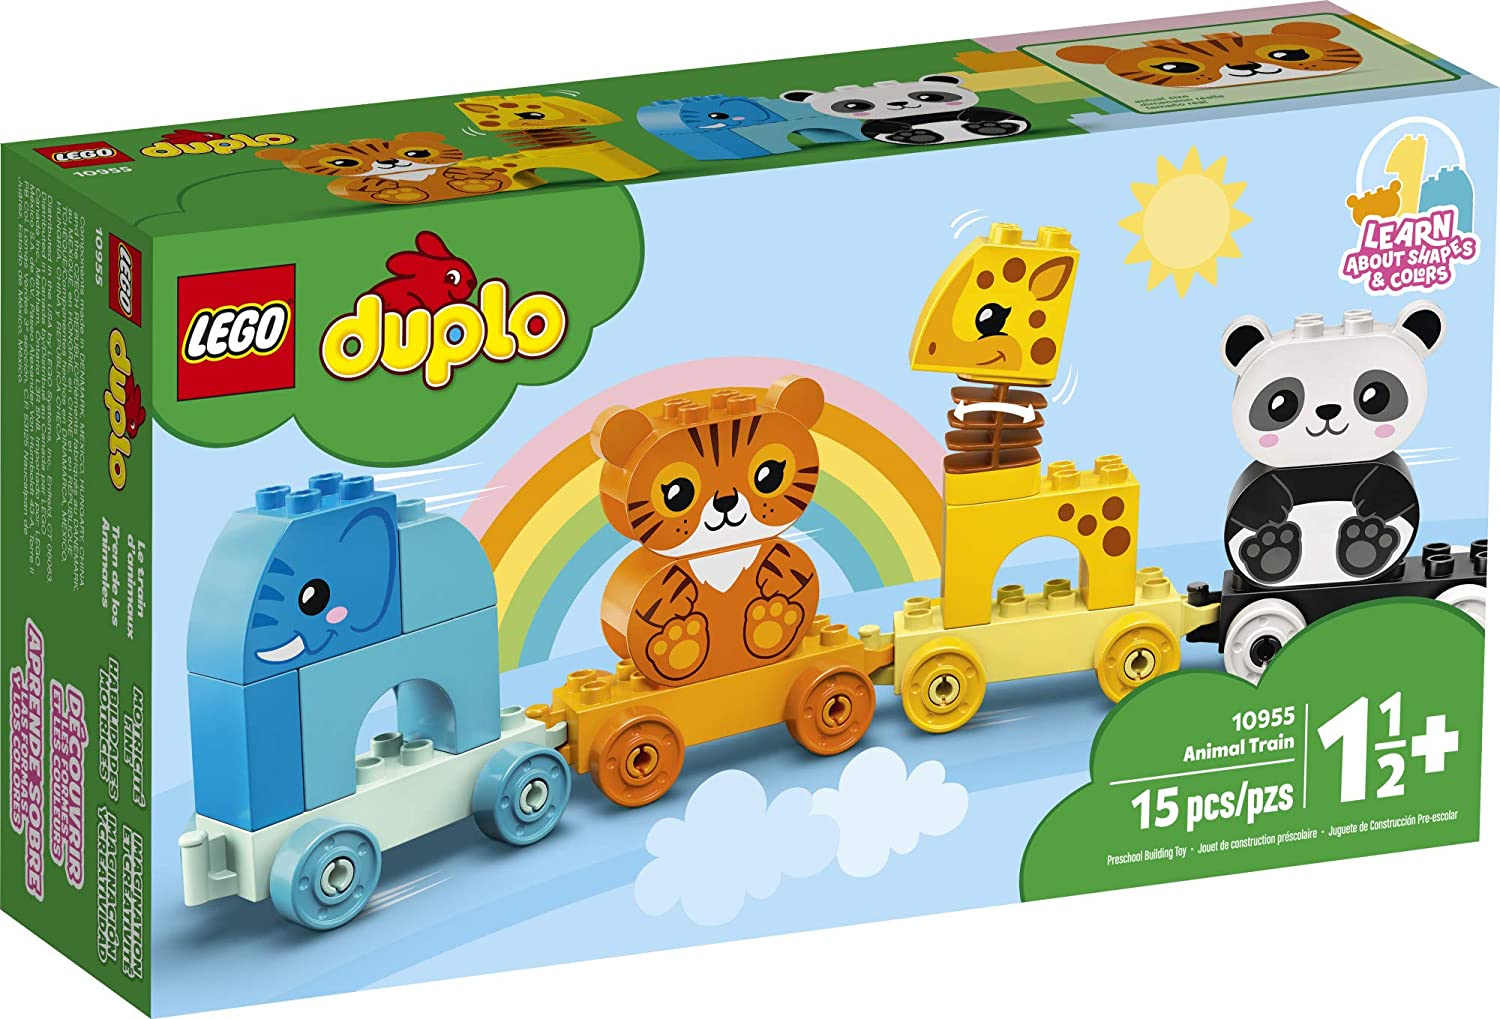 LEGO DUPLO My First Animal Train 10955 Building Toy 15 Pieces